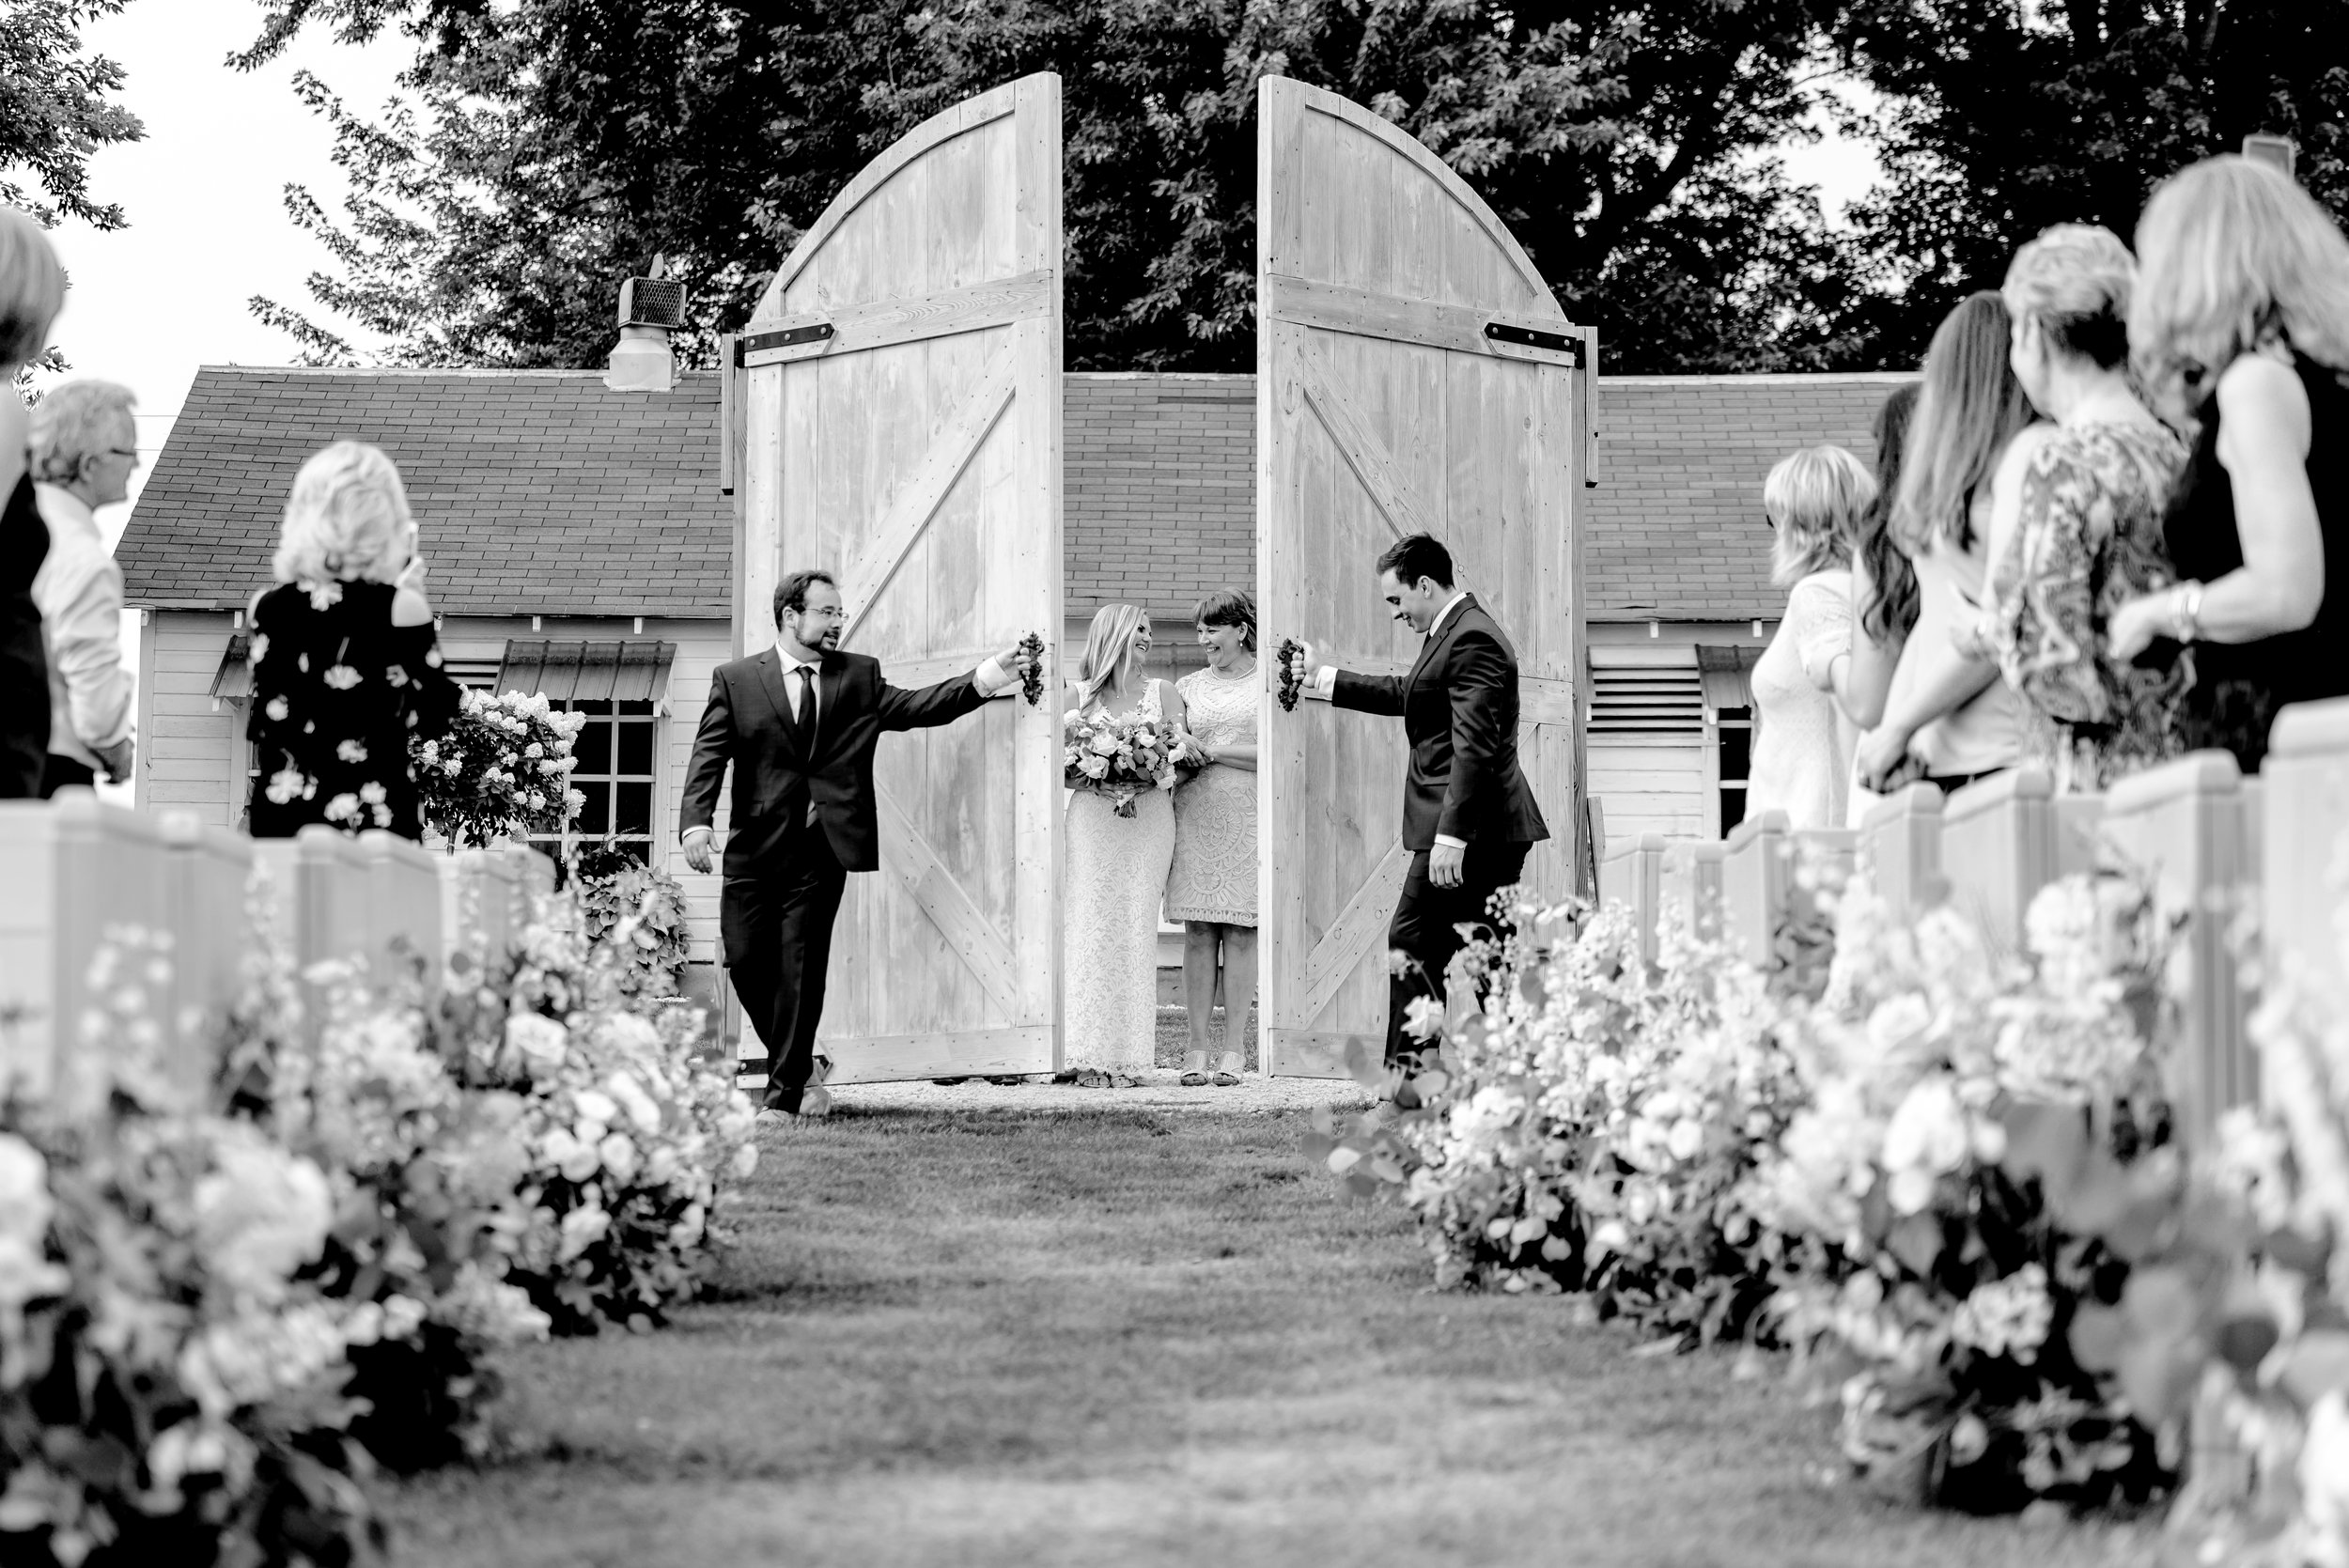 Legacy Hill Farm Wedding - Ceremony Doors - Best Wedding Photographers in MN